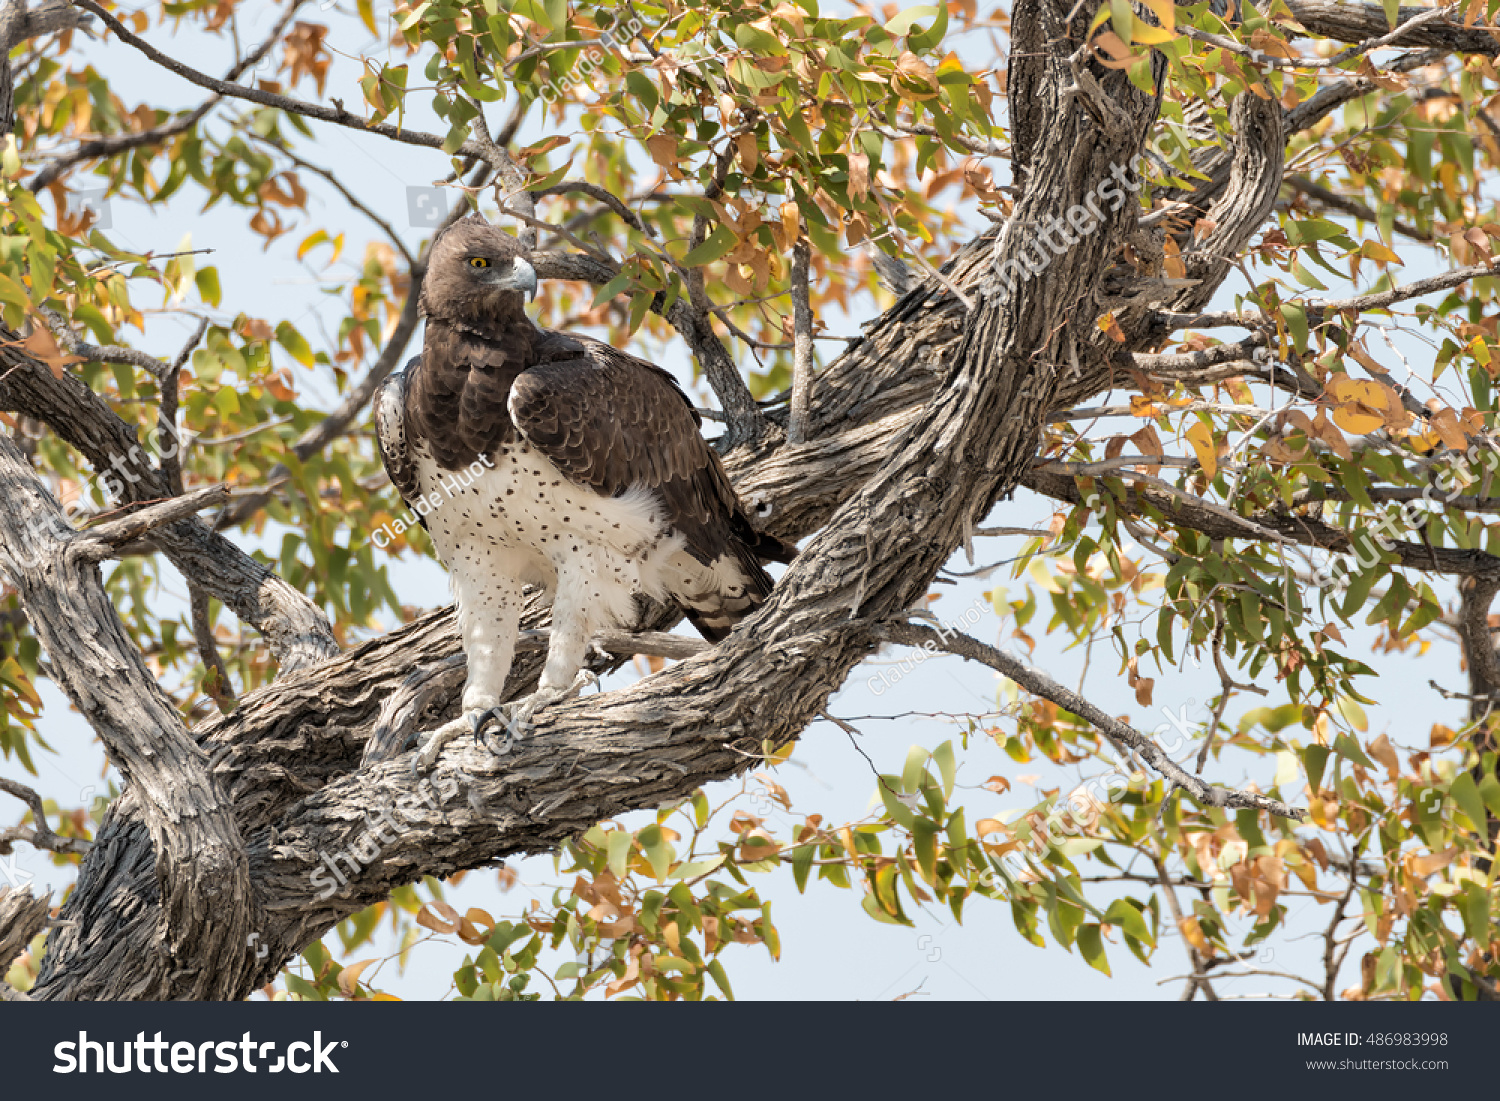 Martial eagle (Polemaetus bellicosus) perched in a tree in Etosha National Park, Namibia